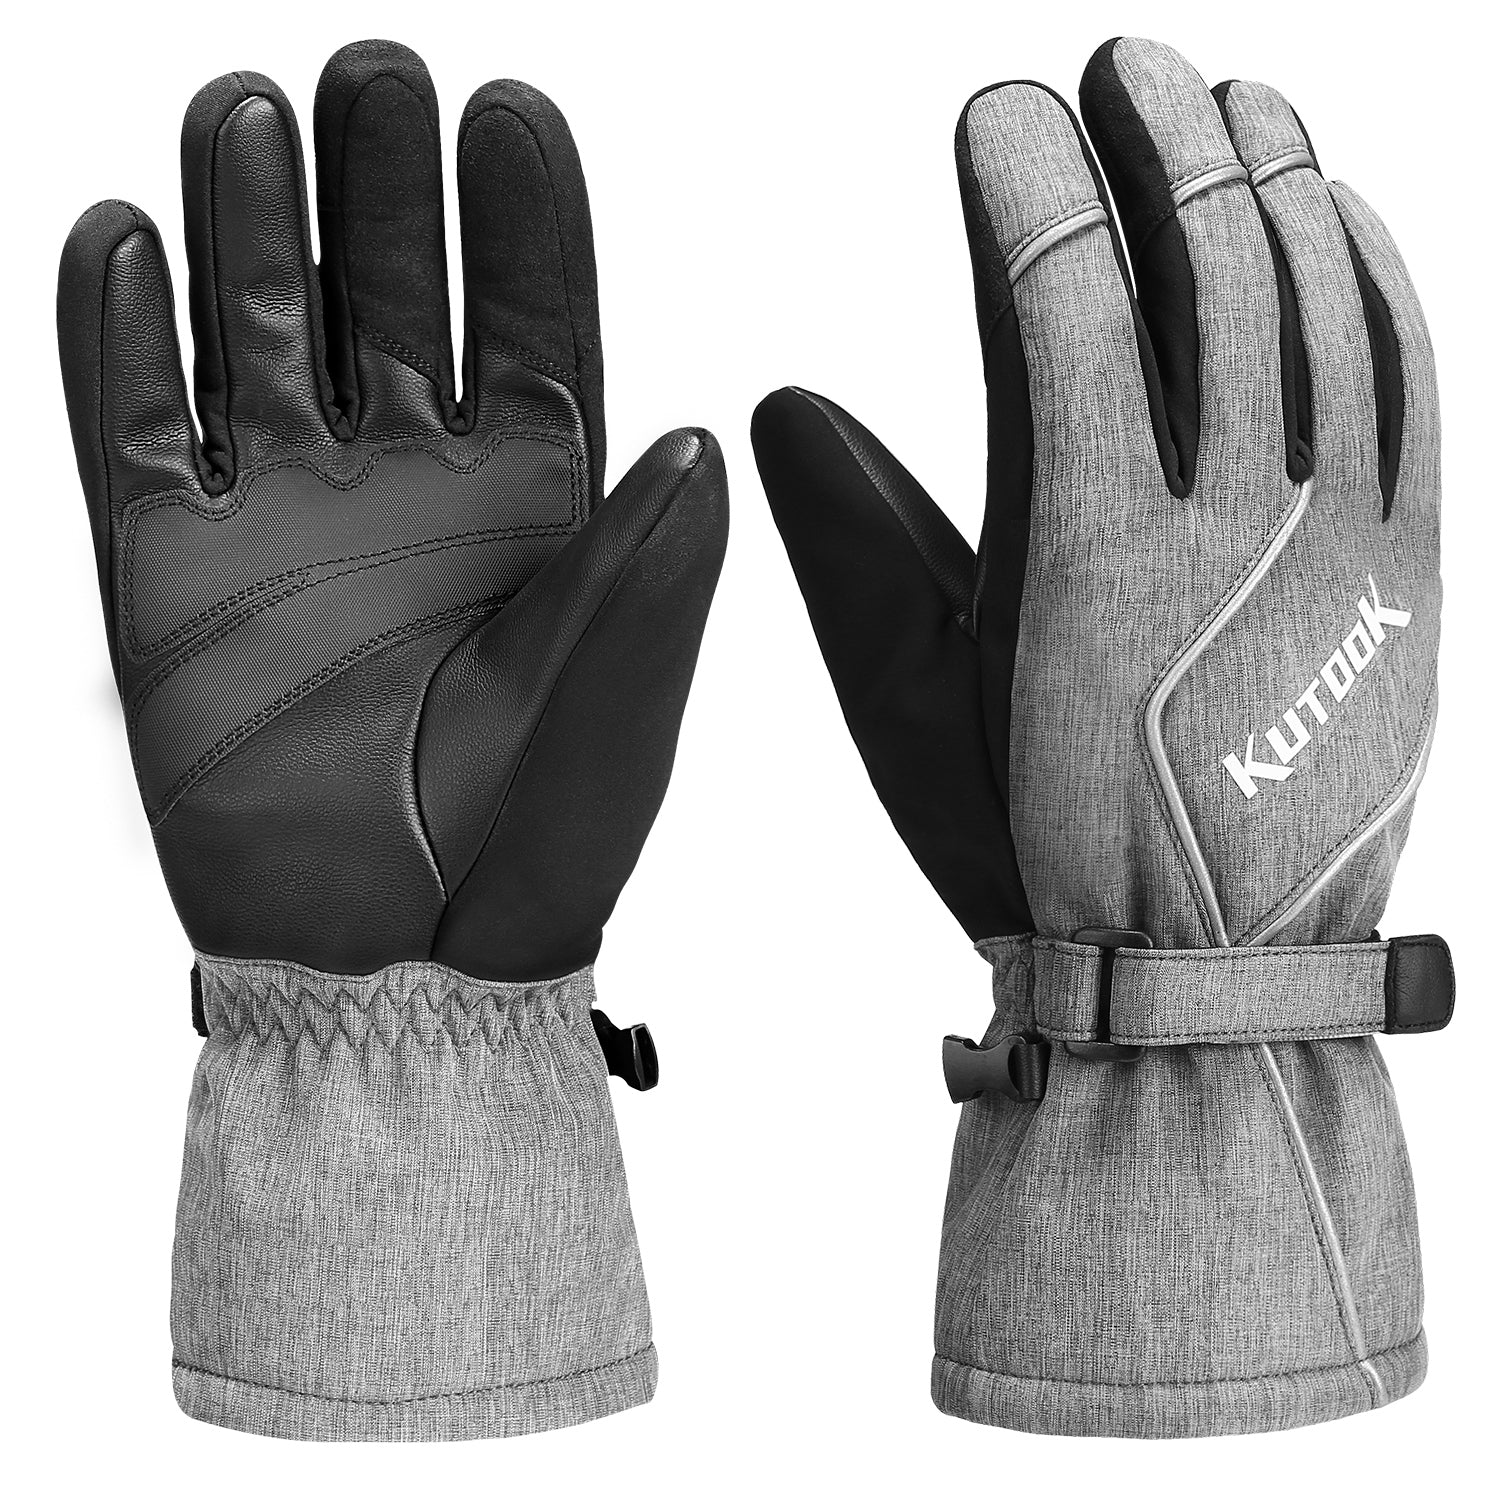 Full Finger Waterproof Ski Gloves